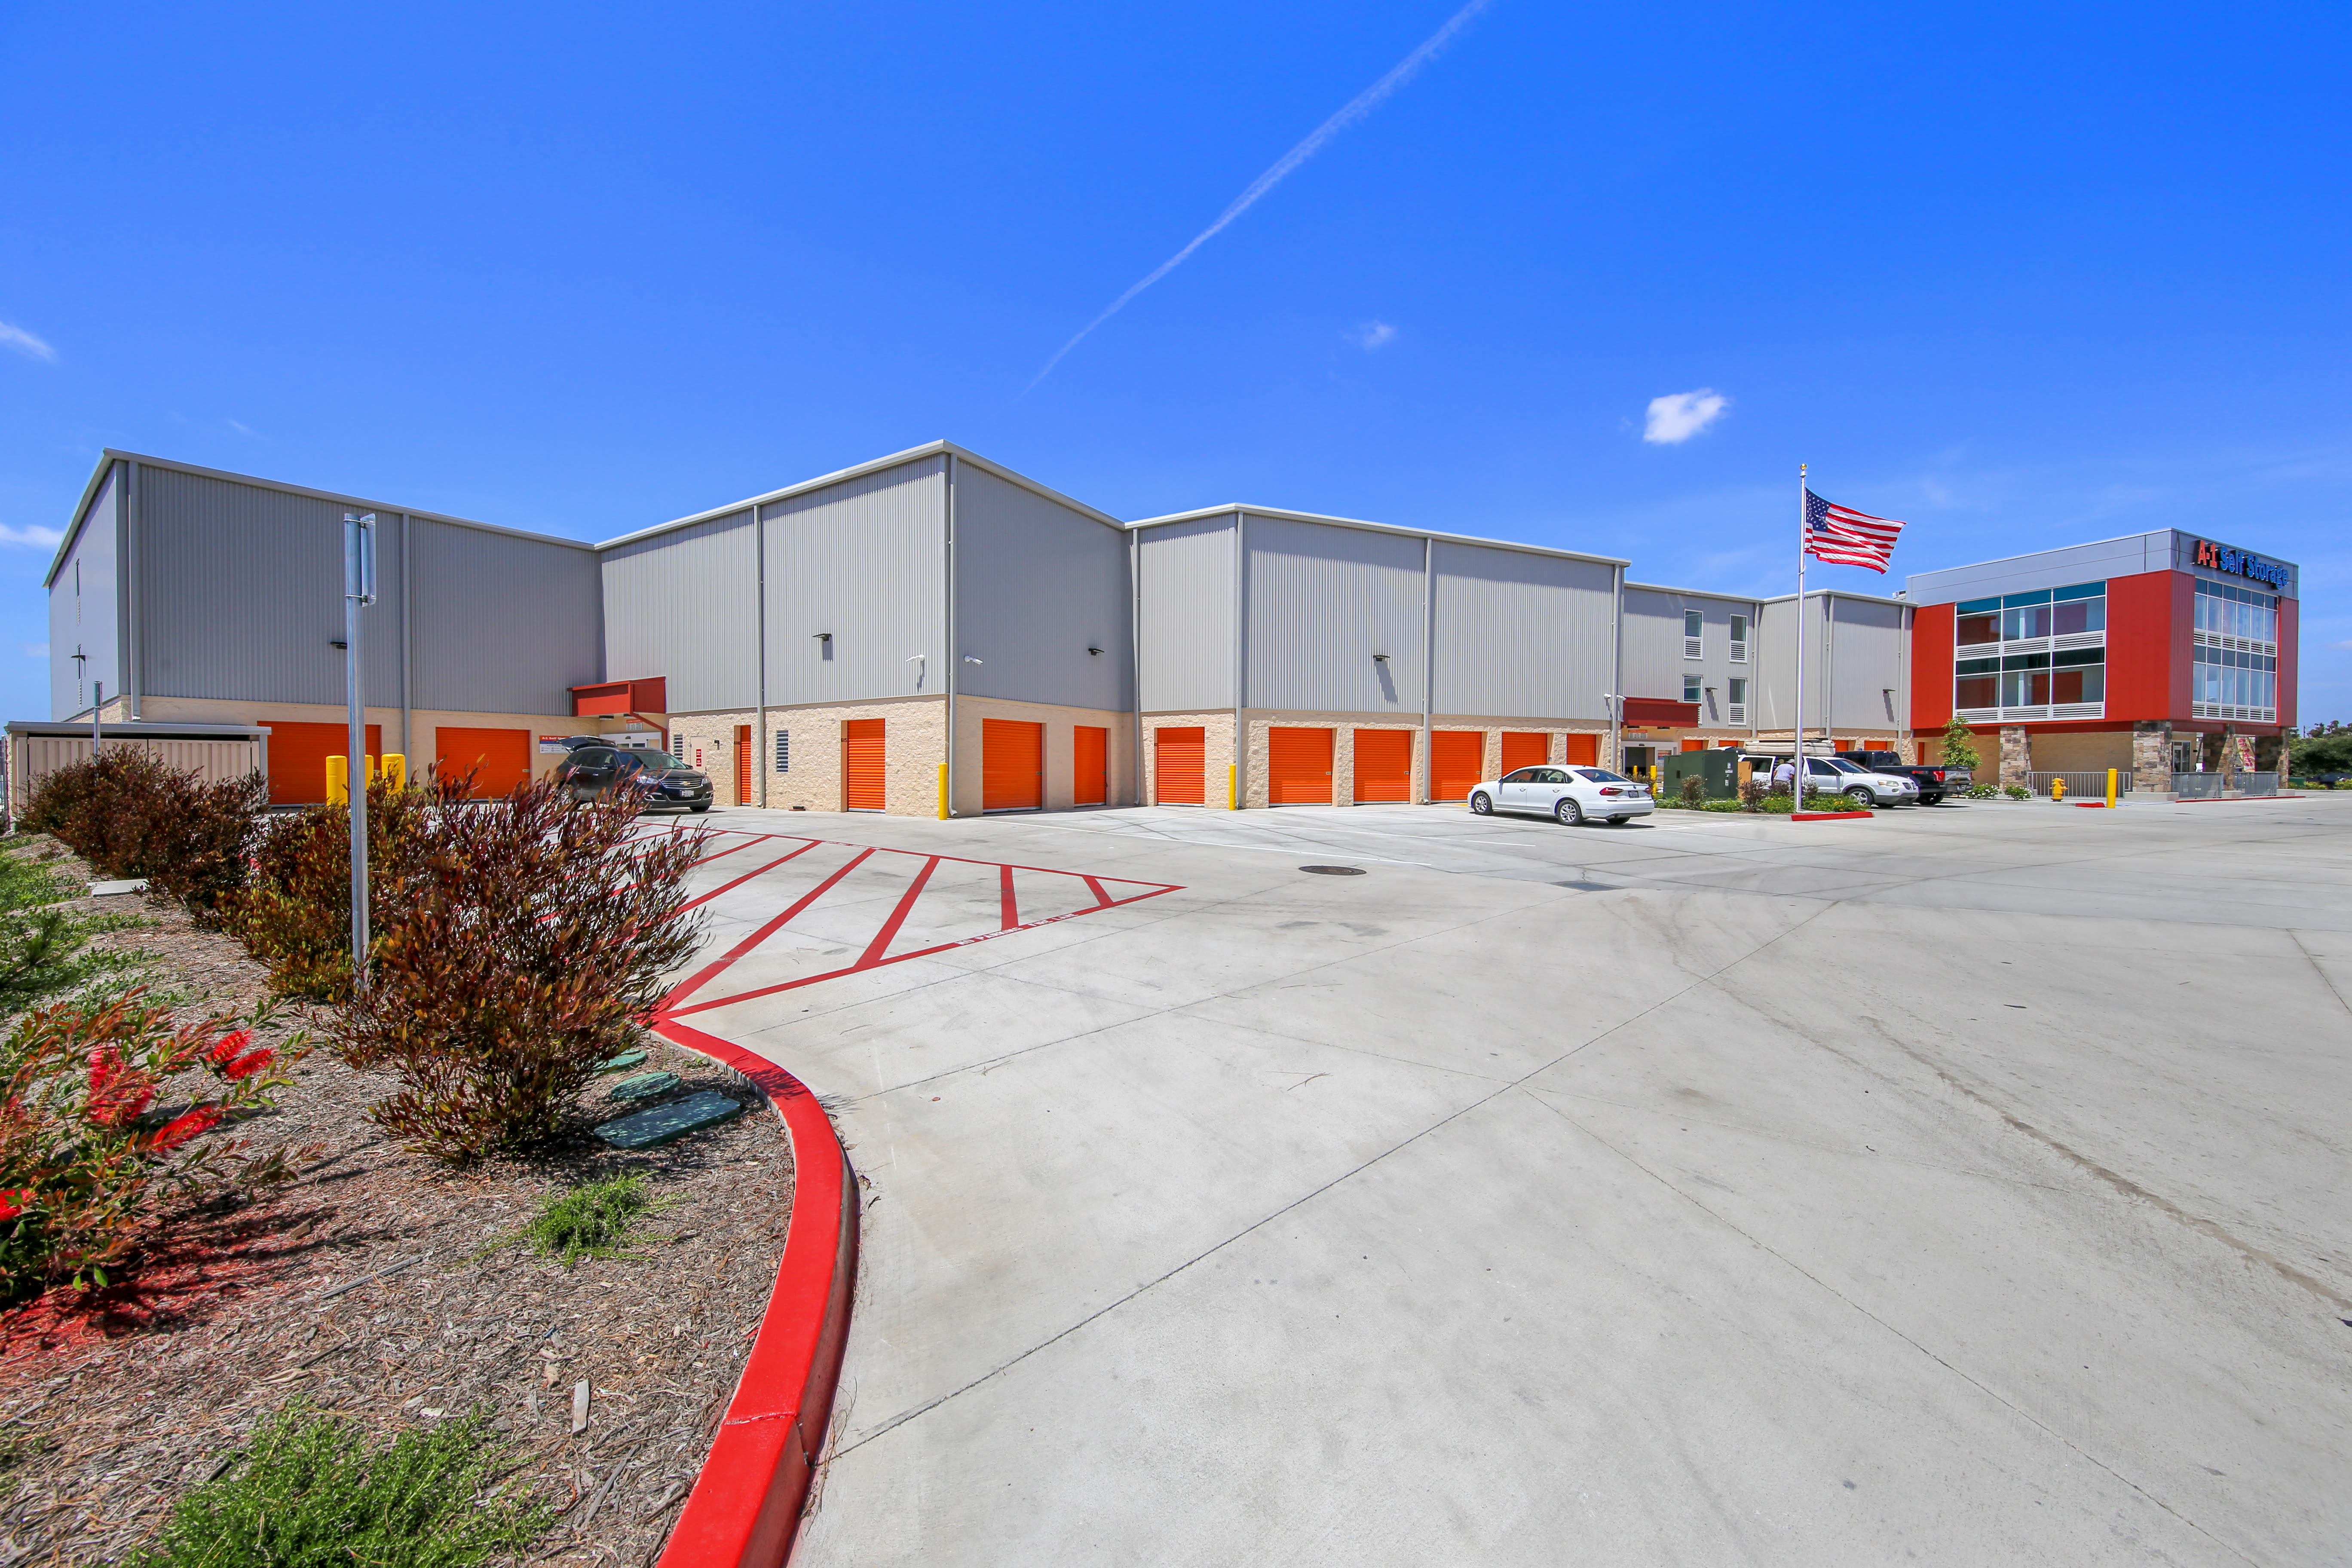 Exterior units at A-1 Self Storage in National City, California